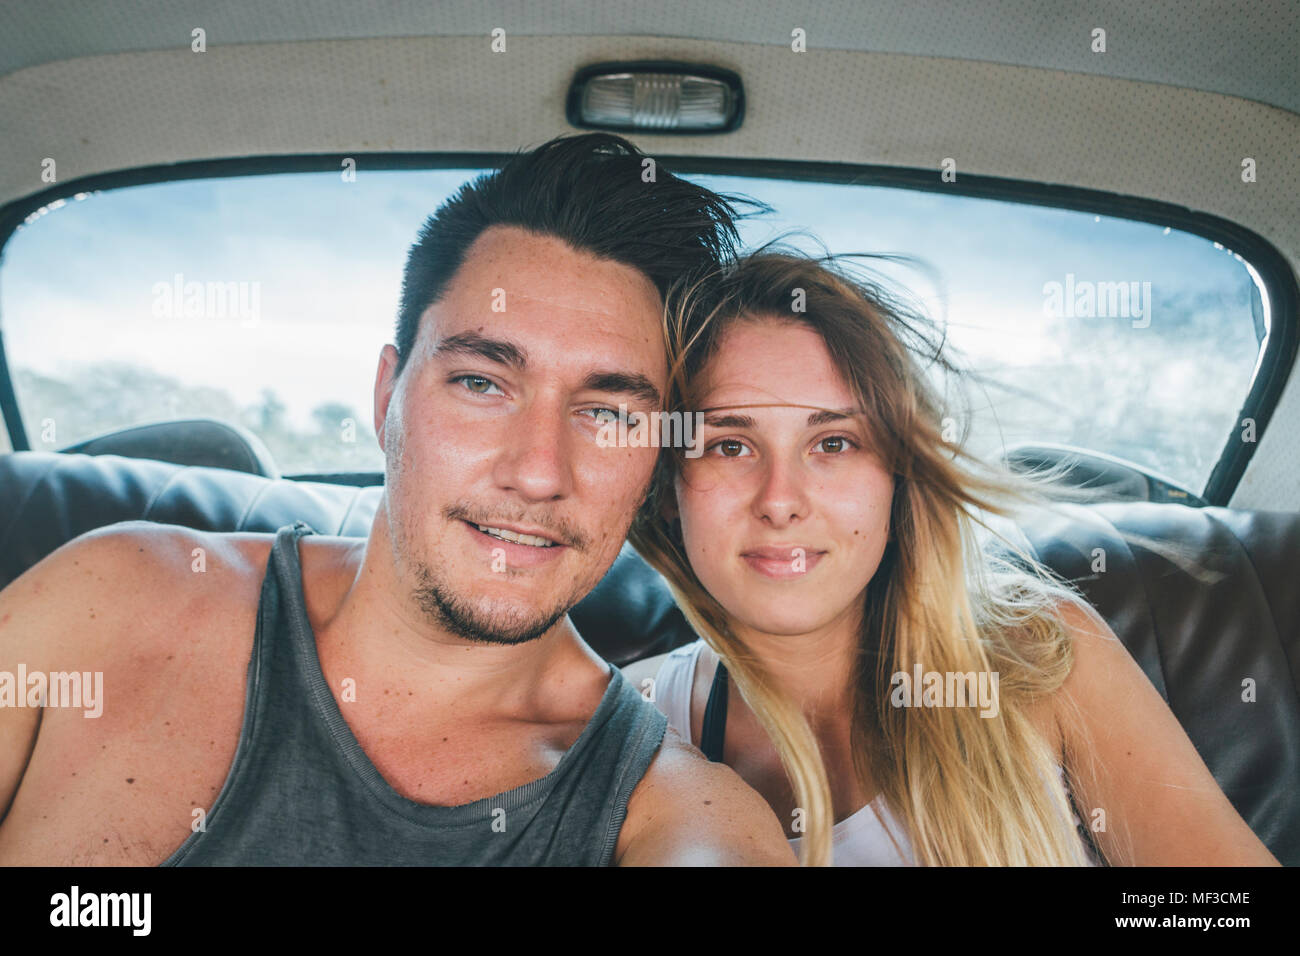 Cuba, Yound couple sitting in a vintage car, taking a selfie Stock Photo